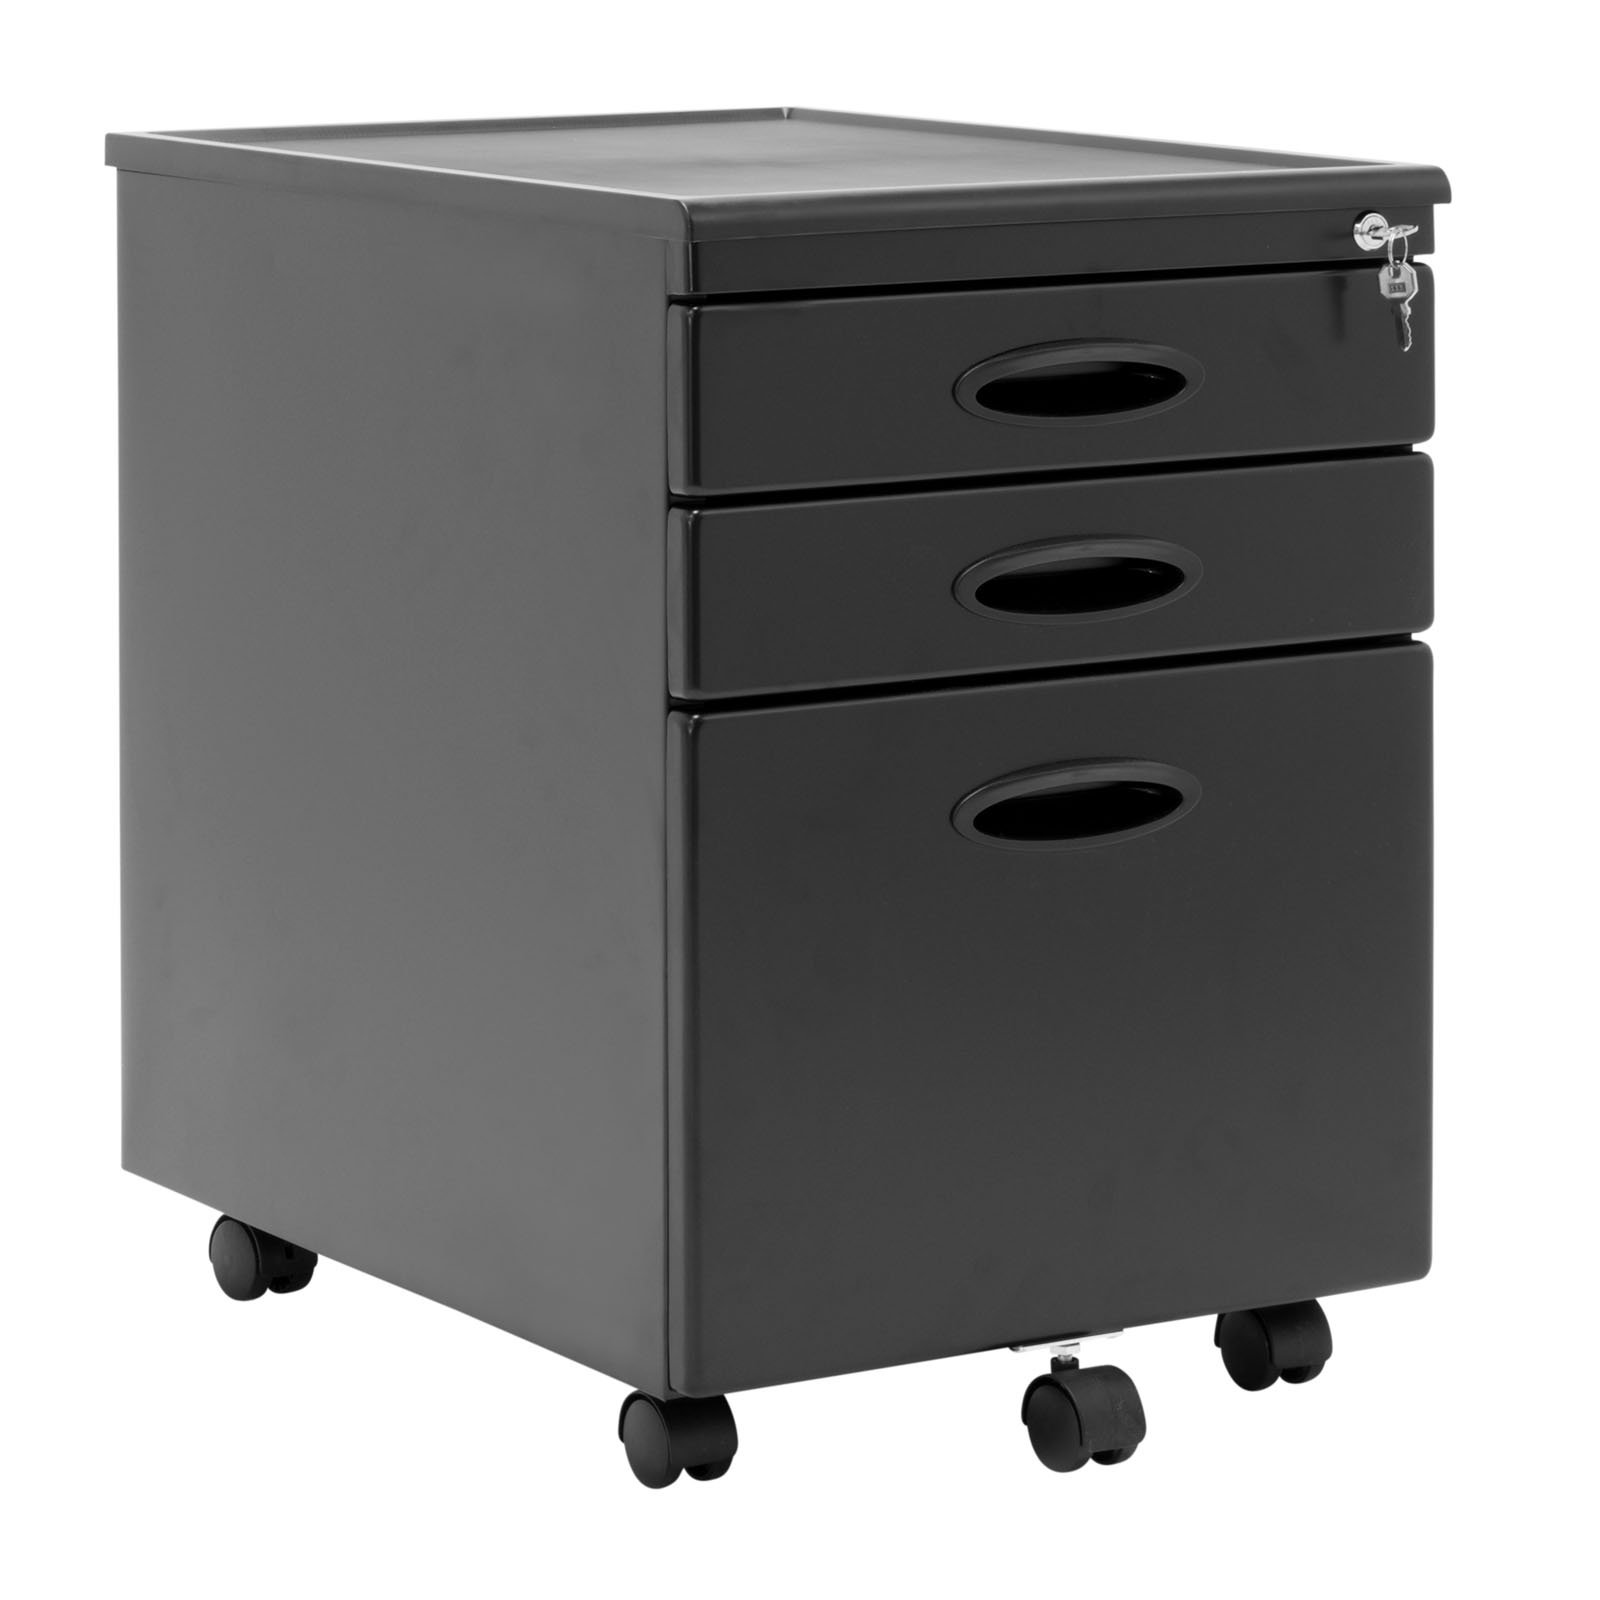 Calico Designs Home Office Furniture Storage 3 Drawer Mobile File Cabinet, Black